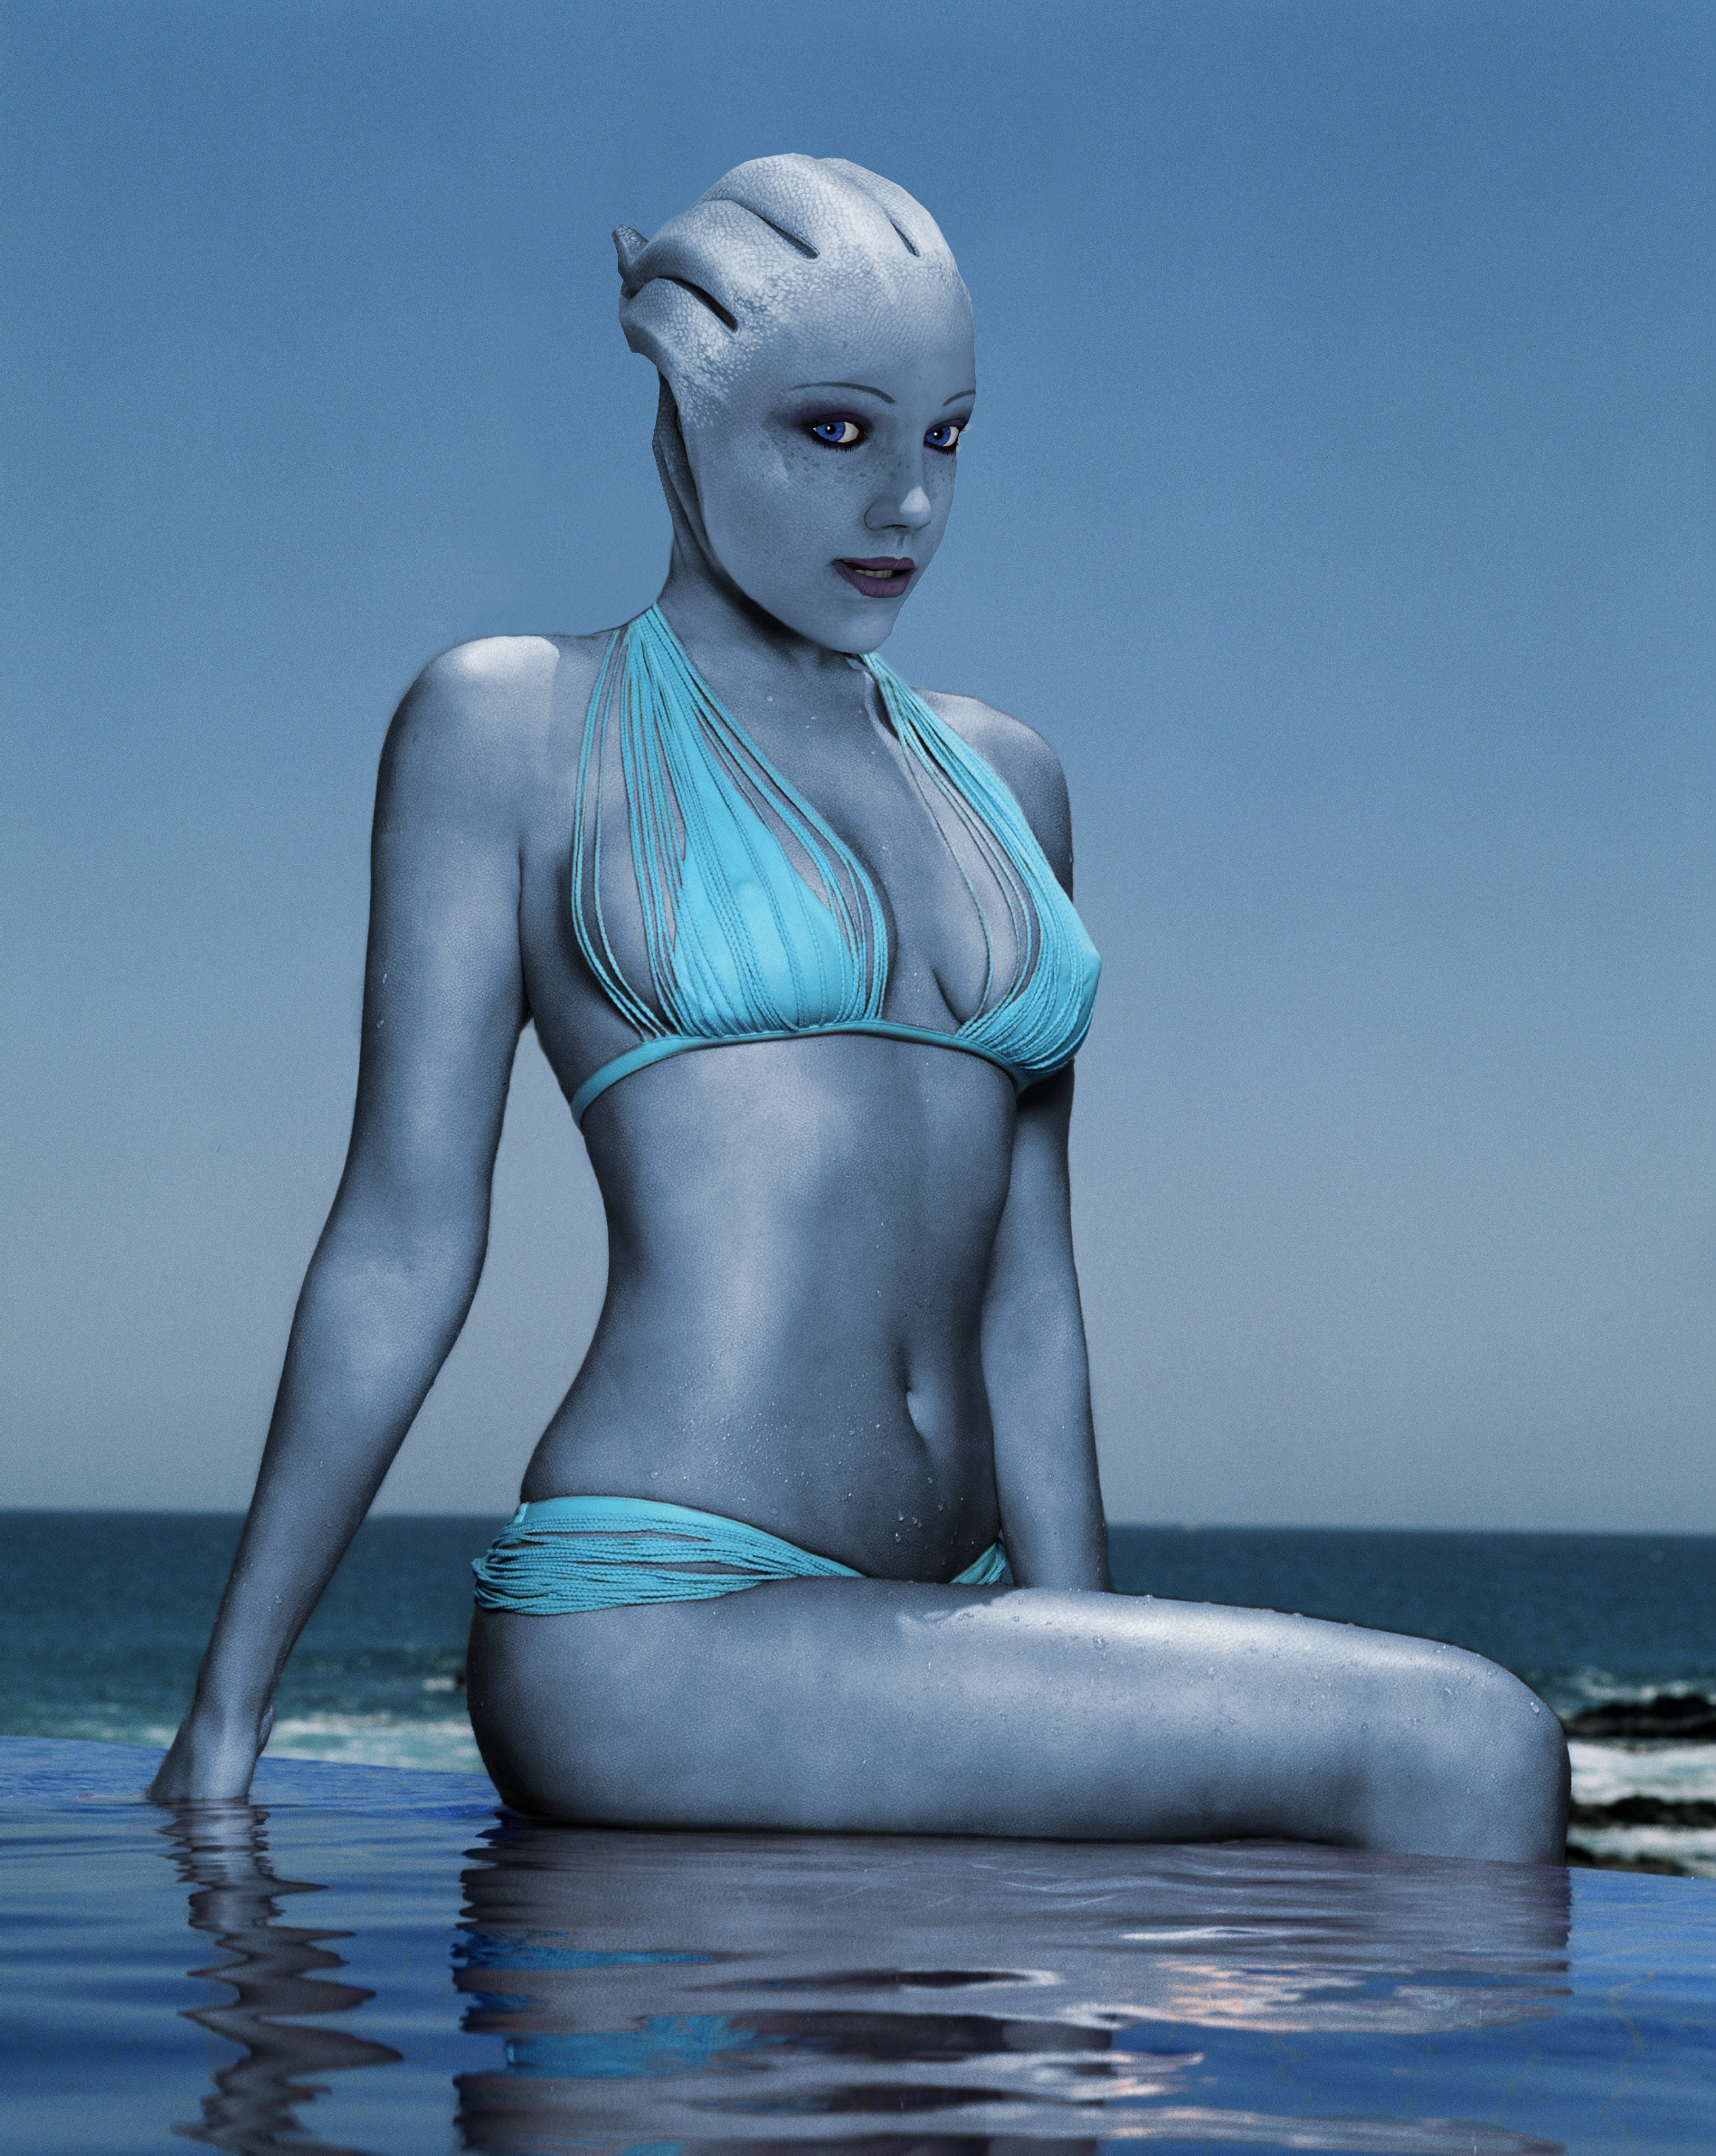 liara_t__soni__blue_addiction_by_rendere